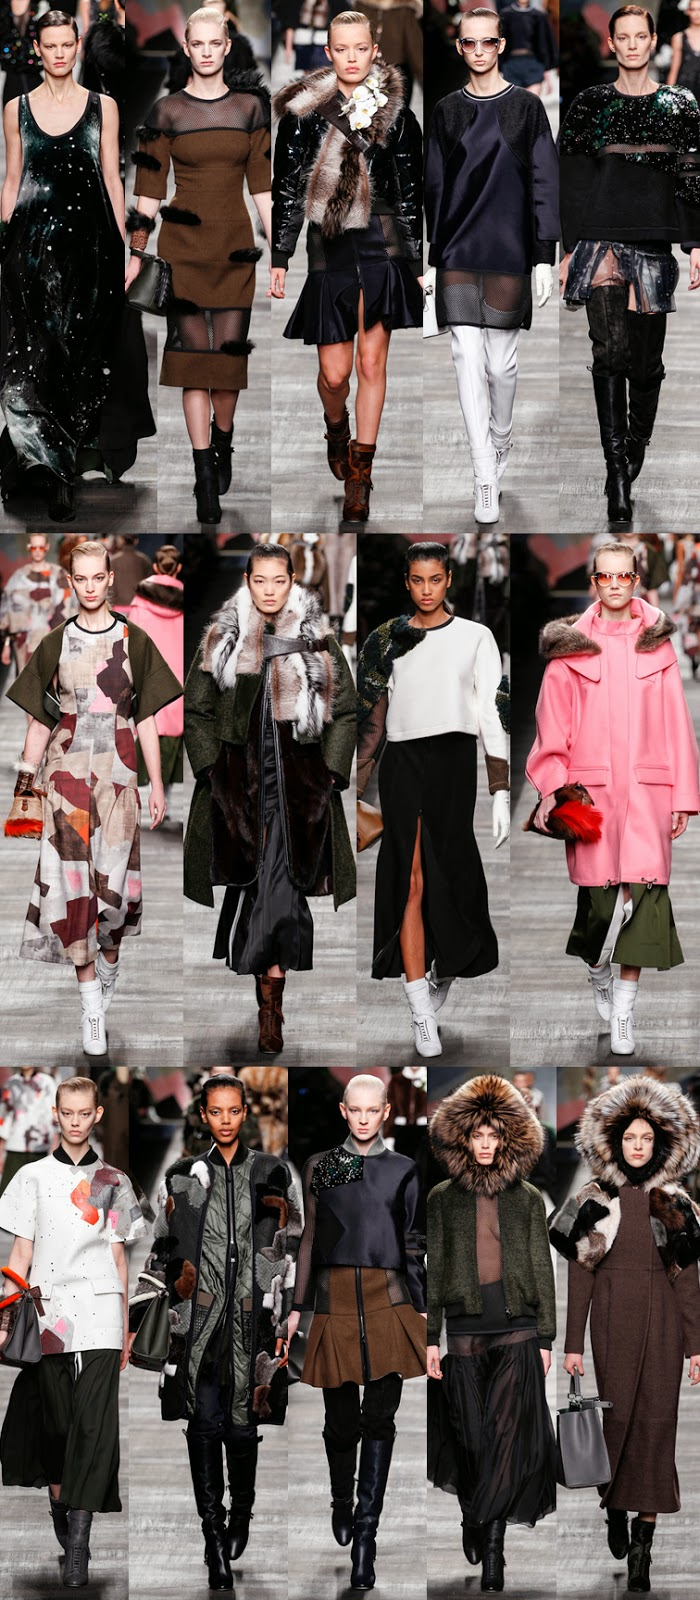 Fendi fall winter 2014 runway collection, Karl Lagerfeld, Silvia Venturini Fendi, FW14, AW14, MFw, Milan fashion week